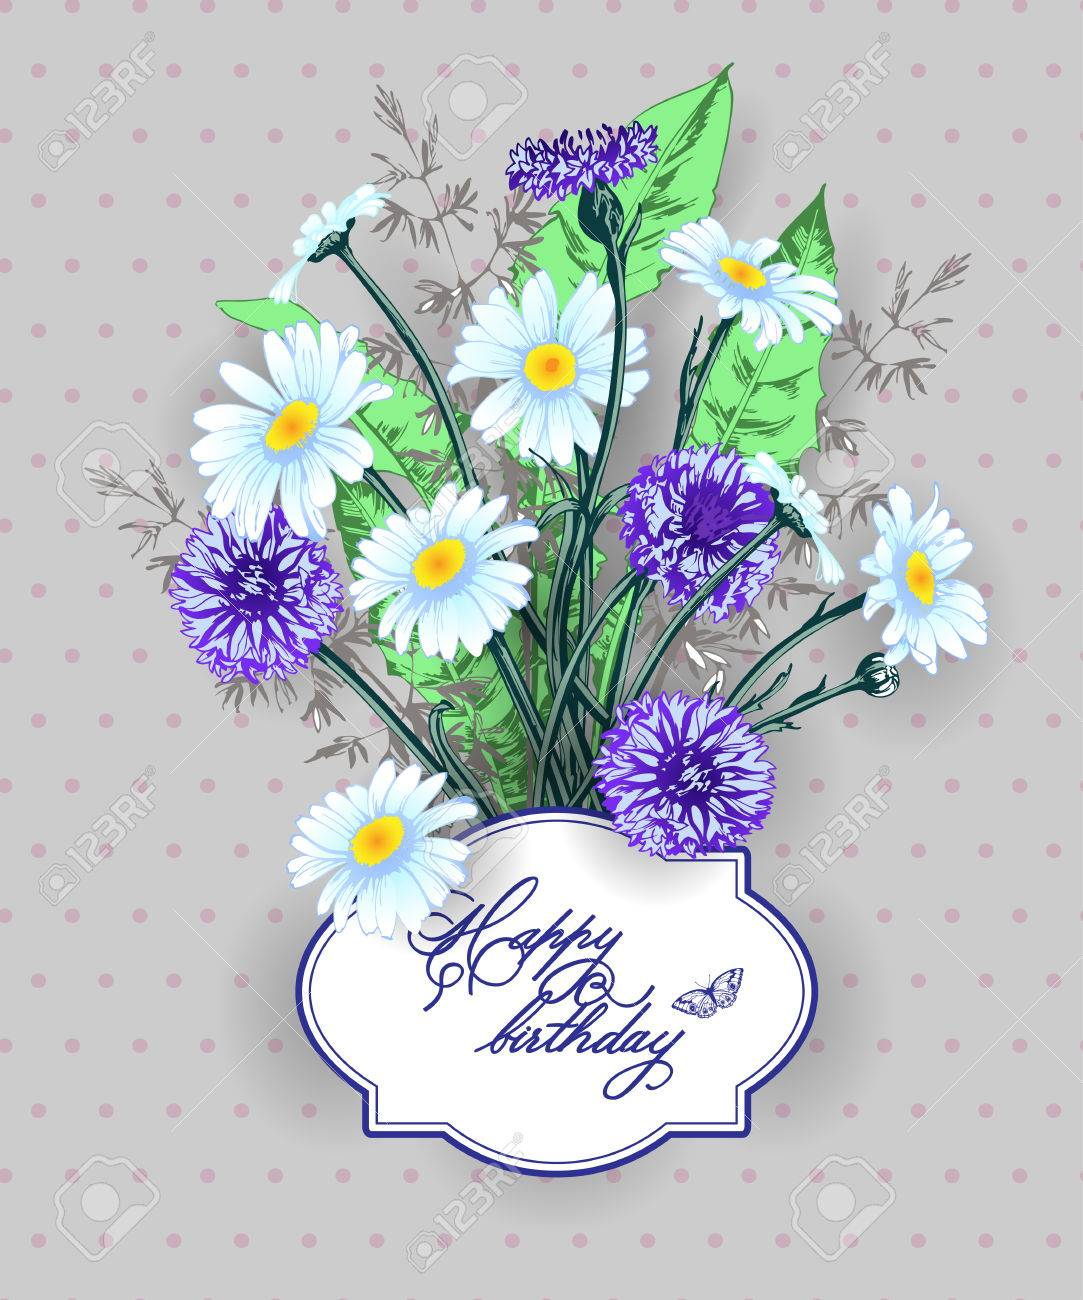 Vintage birthday you card wild flowers daisies cornflowers vector vintage birthday you card wild flowers daisies cornflowers grass use for boarding pass thank you card invitations template vector izmirmasajfo